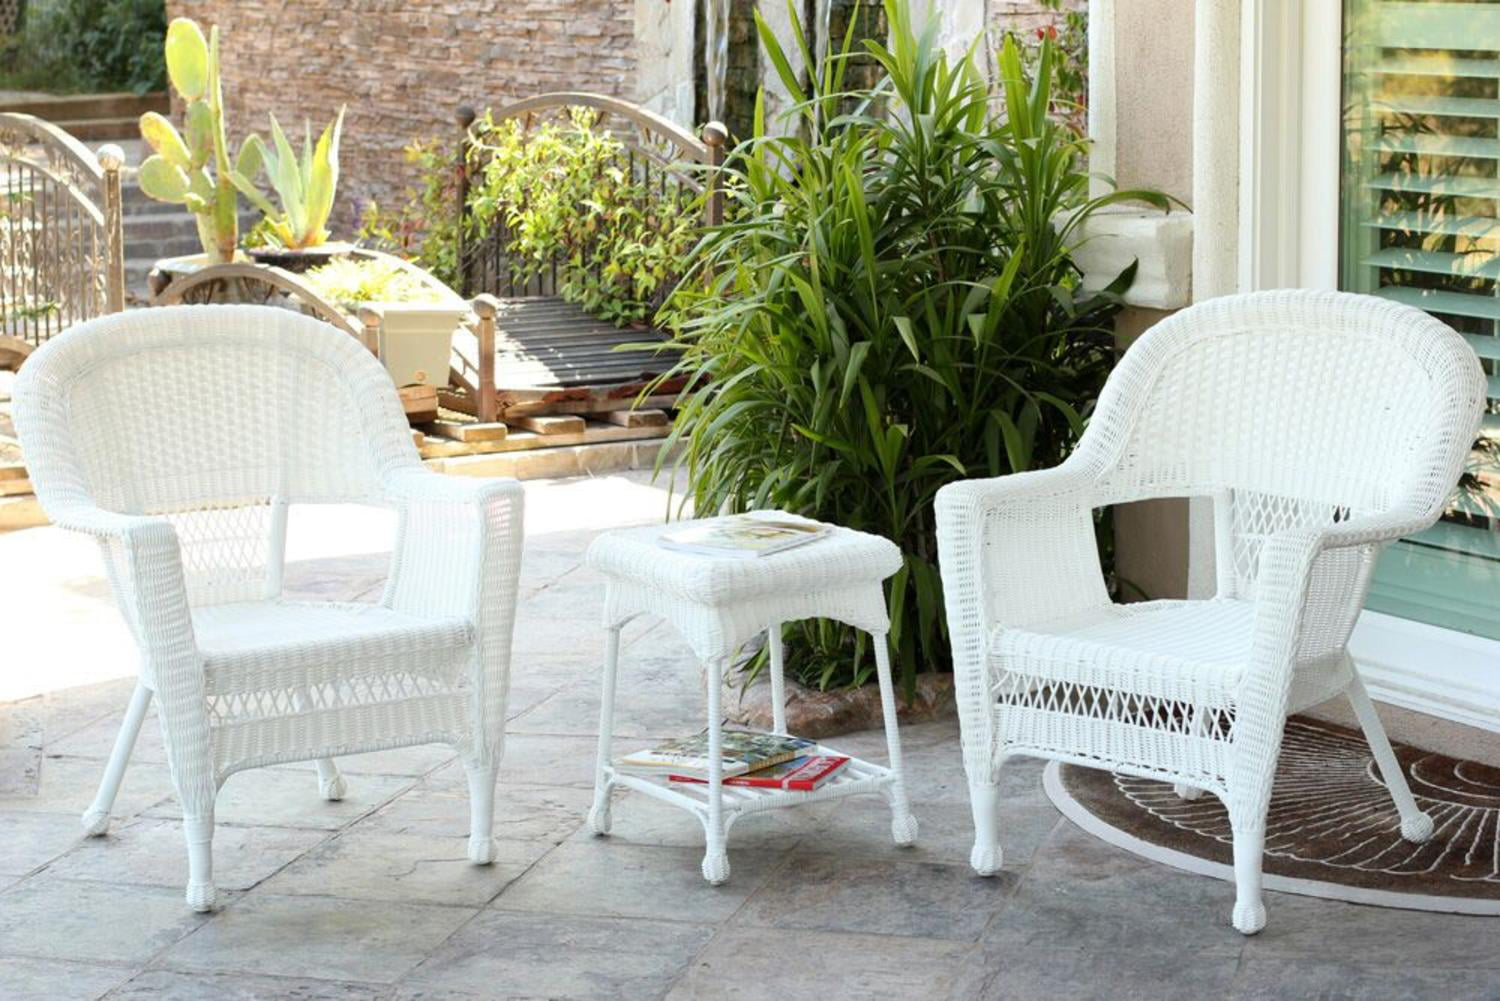 white chairs sets outdoor furniture for small spaces | 3-Piece White Resin Wicker Patio Chairs and End Table ...